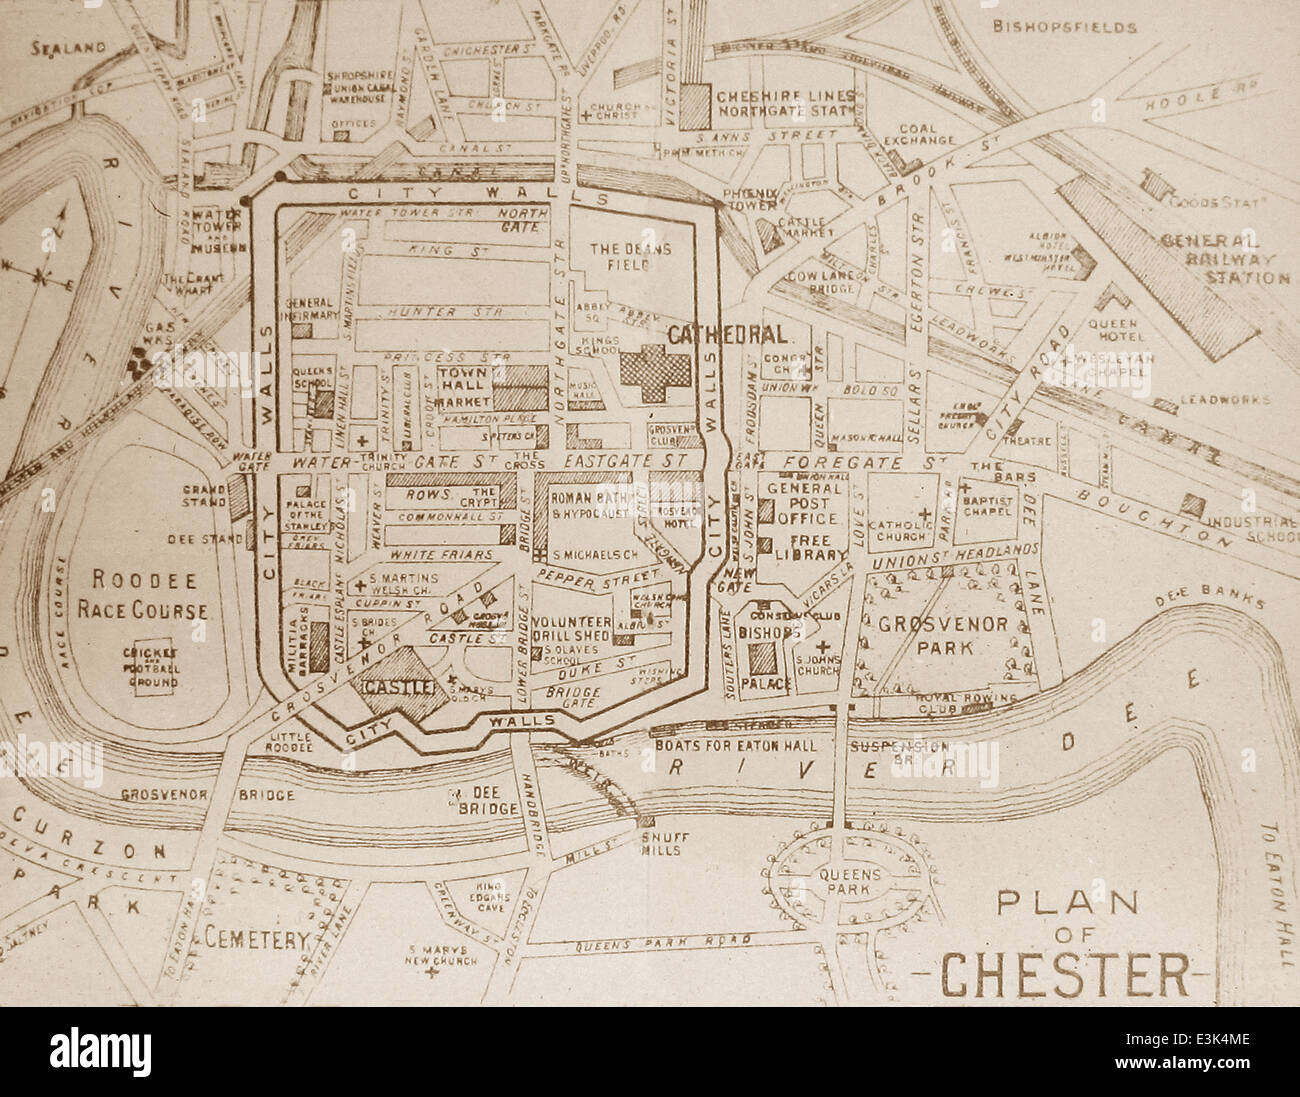 Map of Chester early 1900s Stock Photo  71106238   Alamy Map of Chester early 1900s